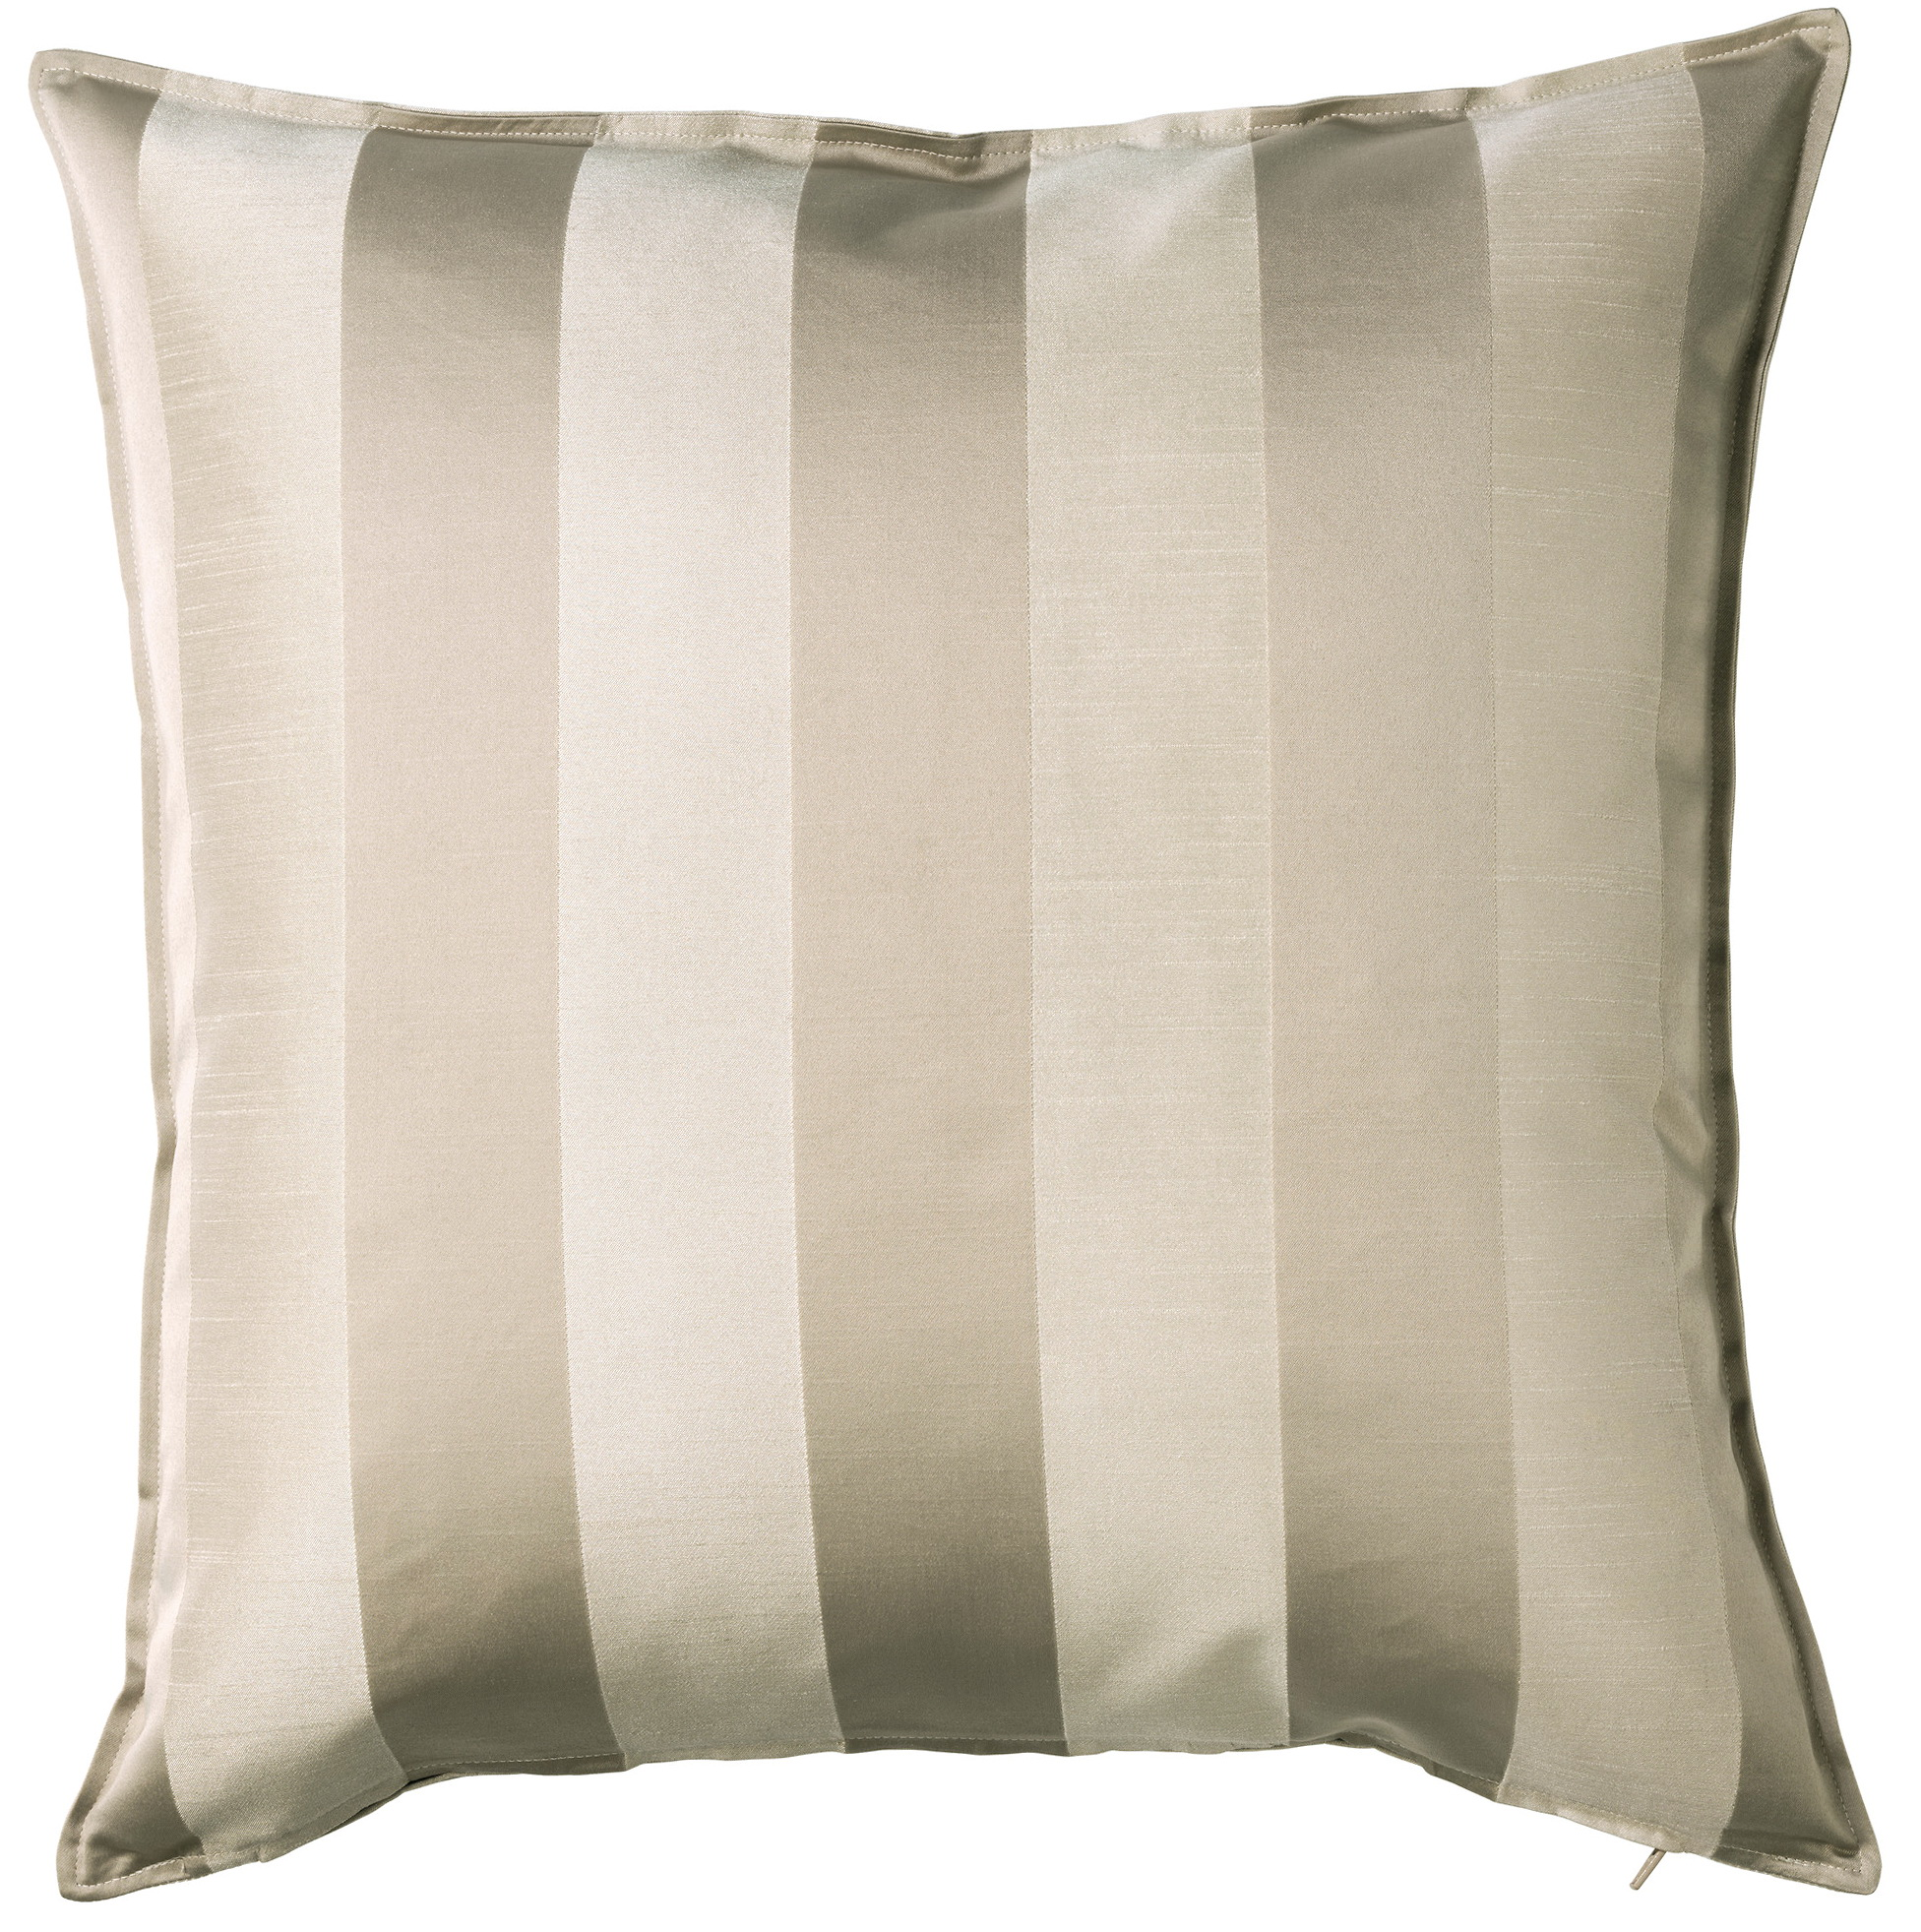 Cushion Covers Ikea Dublin Home Design Ideas